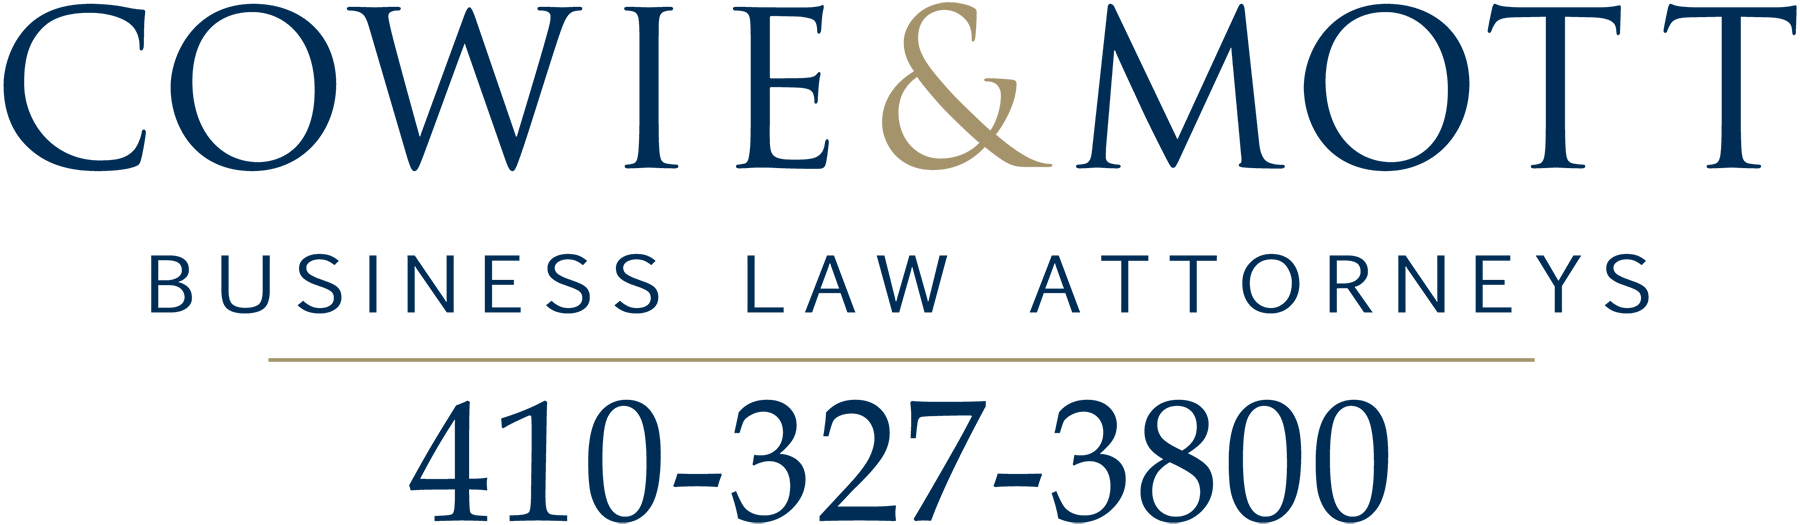 Maryland Business Attorneys and Lawyers